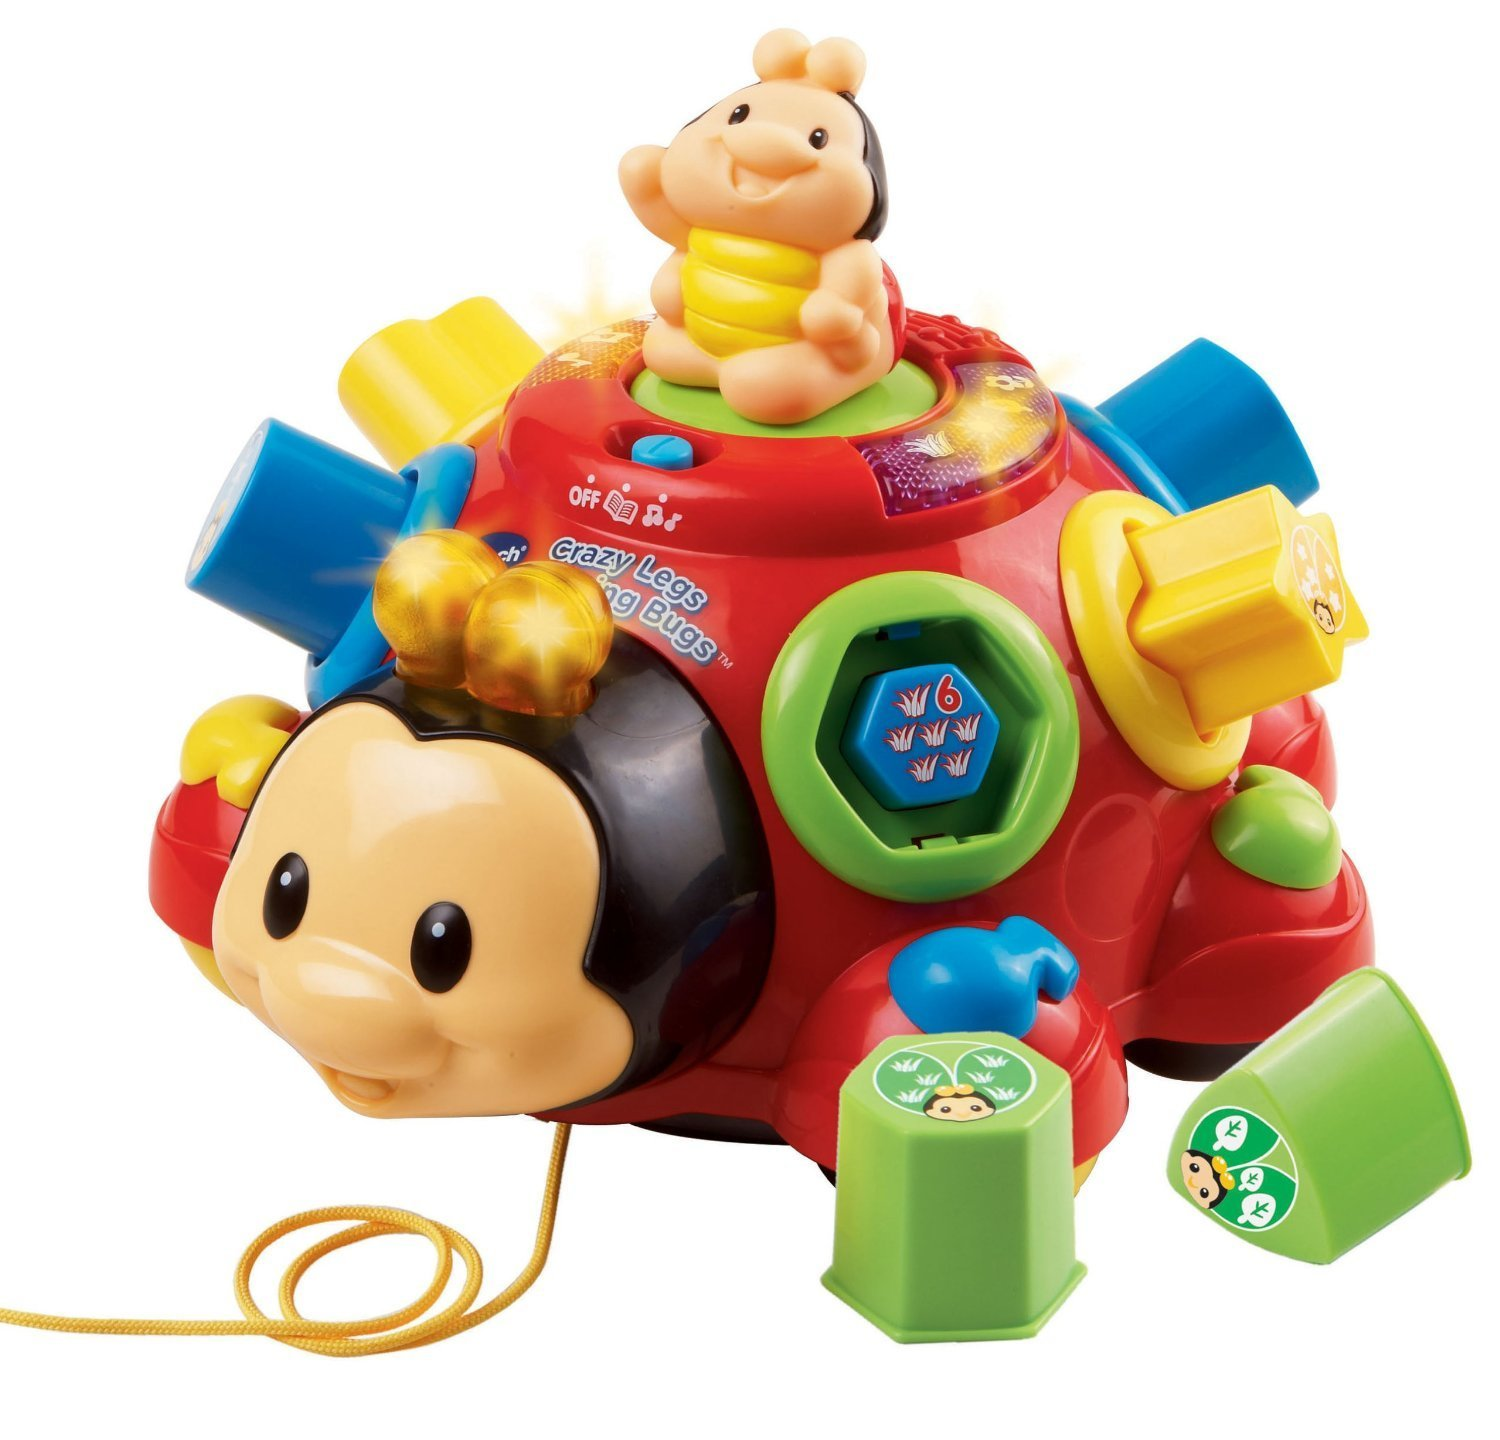 Early Education Toy Crazy Legs Learning Bugs Music Toy for Kids, Ships from United States. Estimated Delivery Time: 5-8 days By VTech